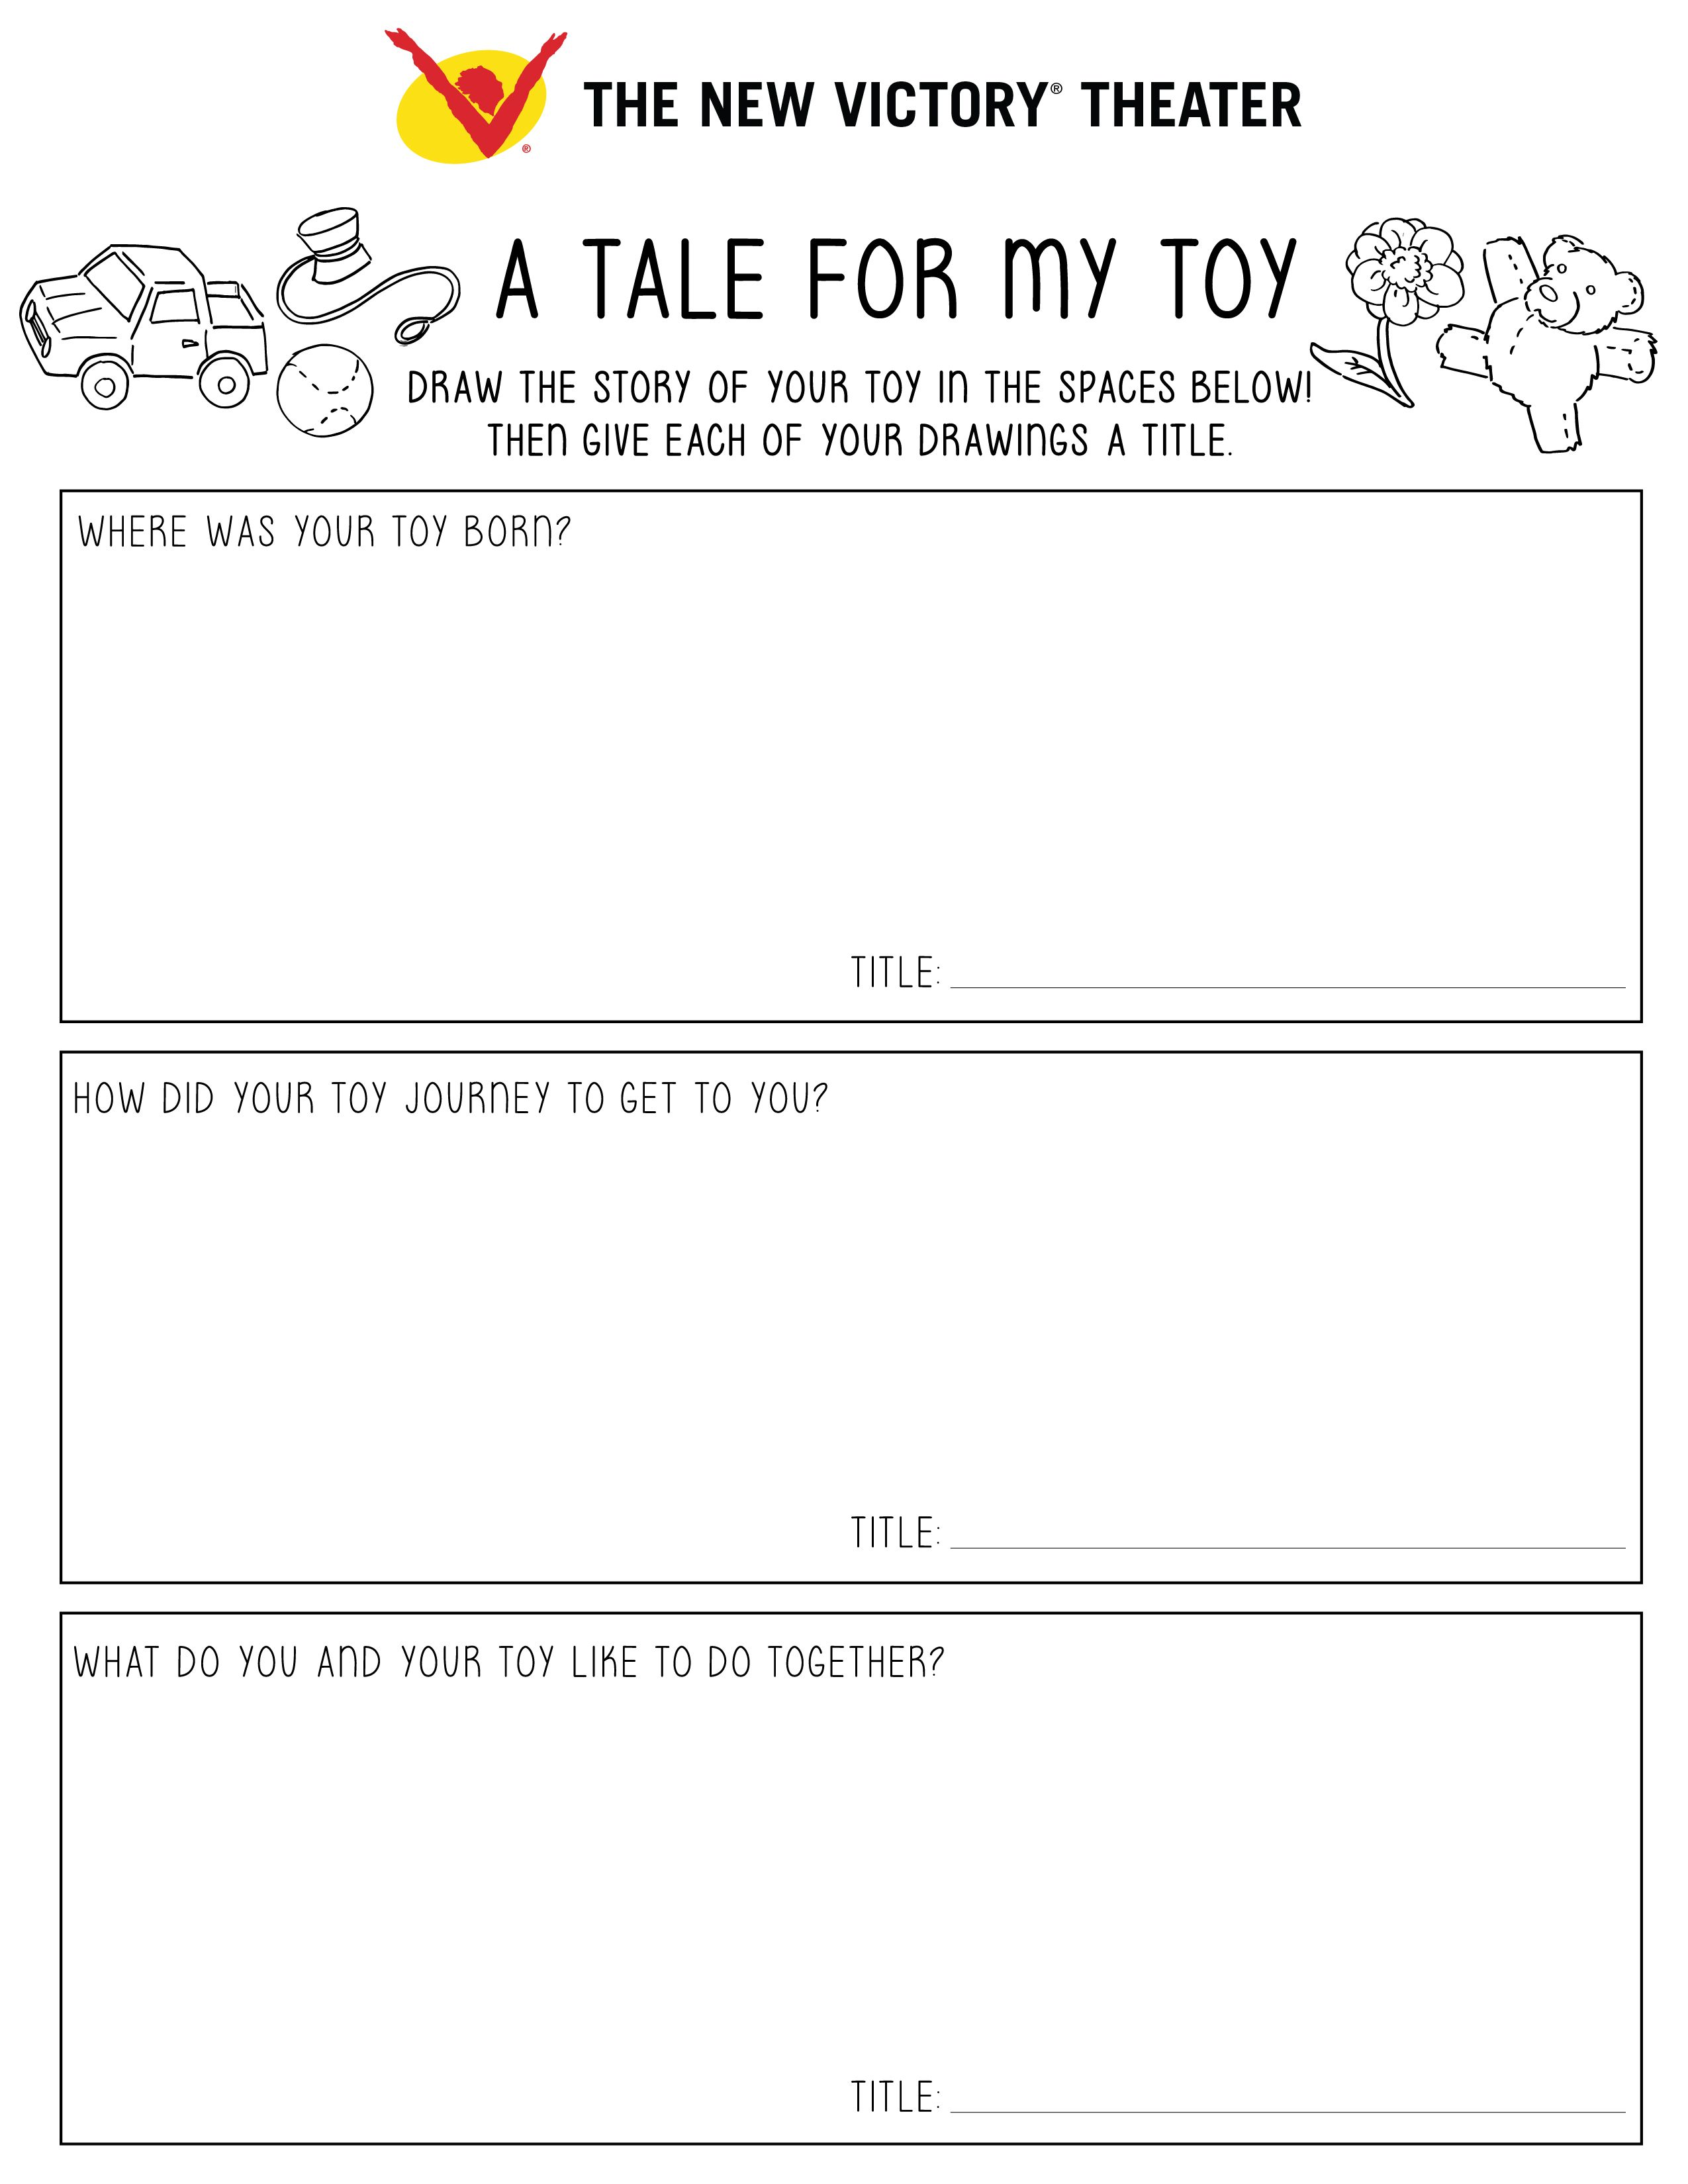 Guide Your Kids Through Telling The Tales Of Their Toys With This At Home Education Idea And